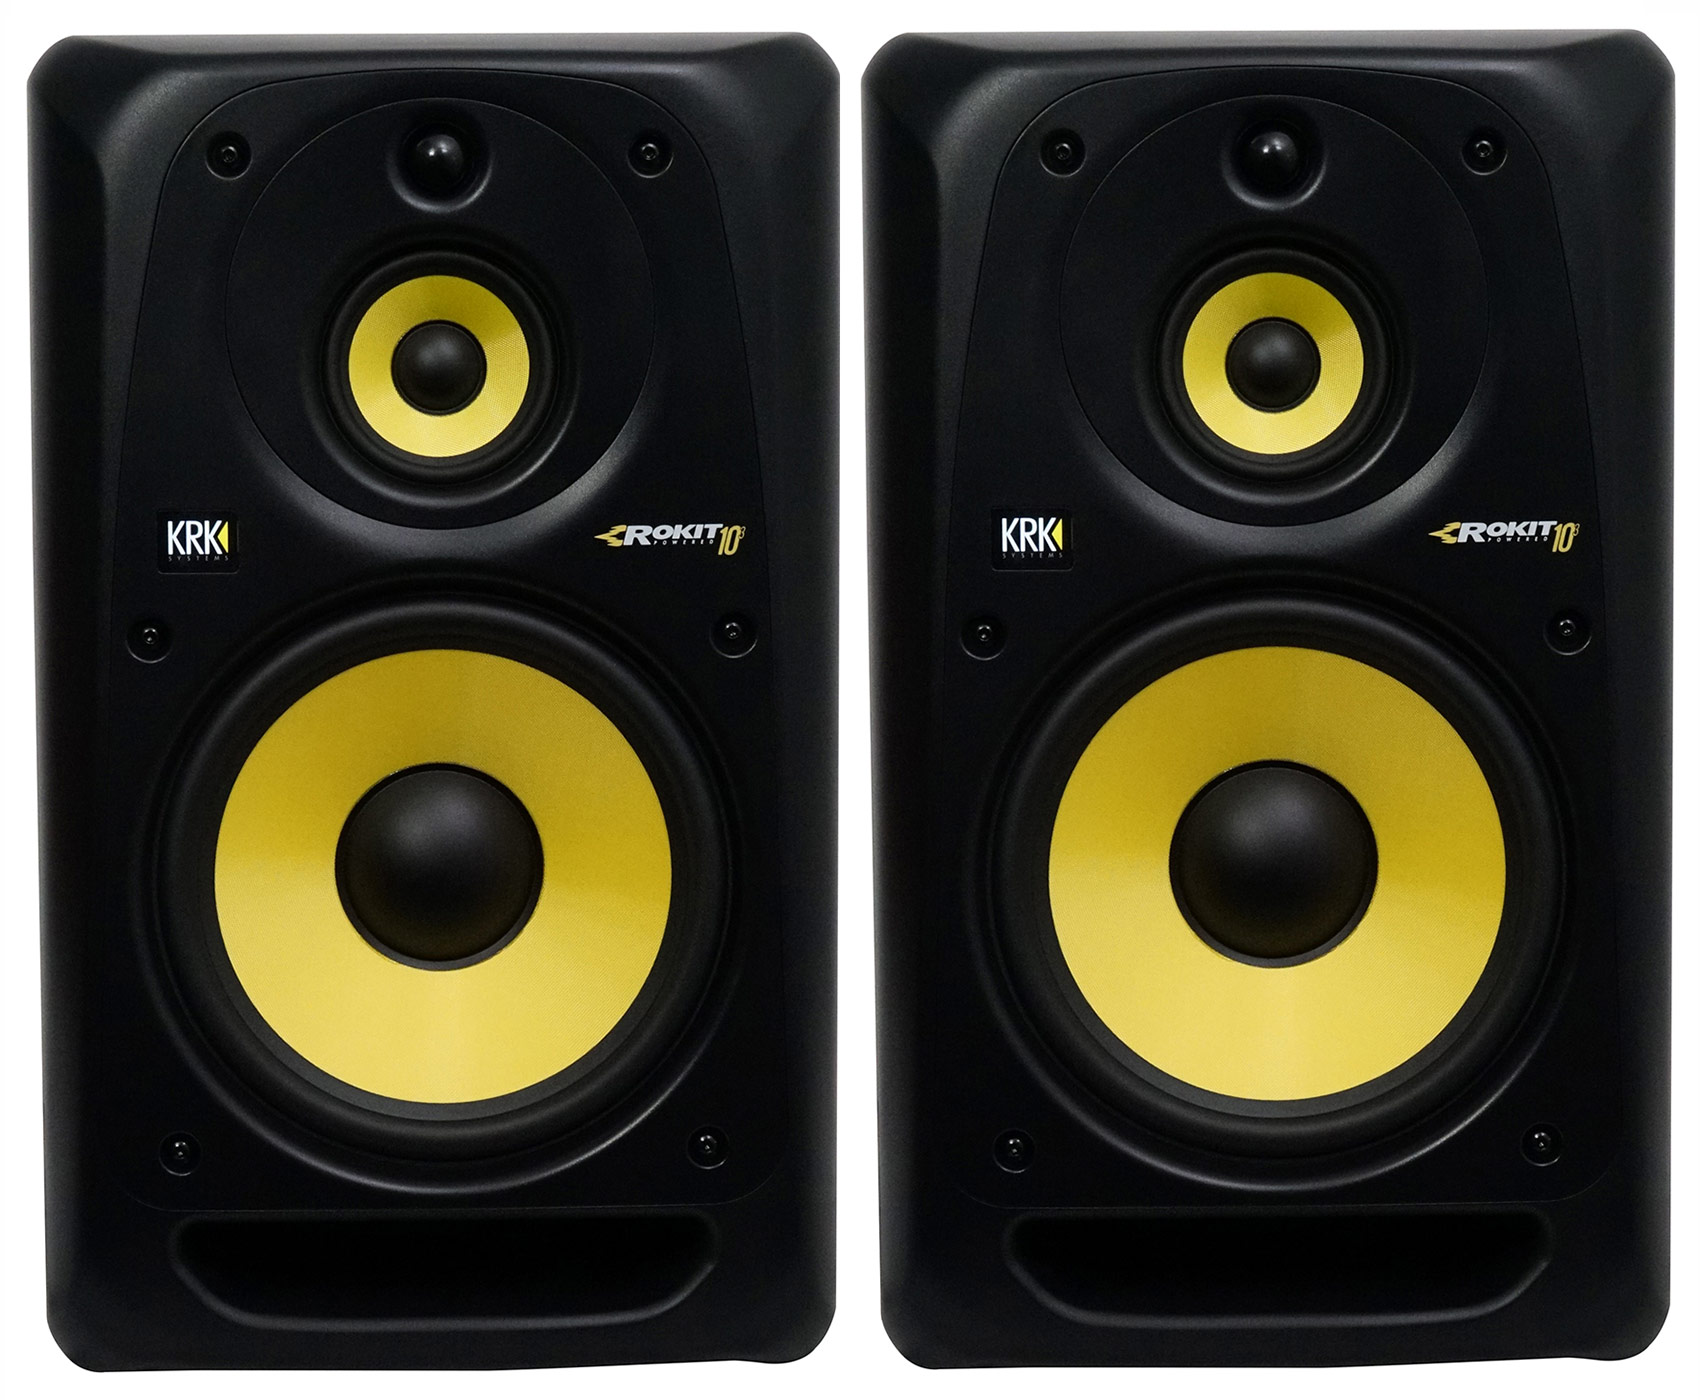 "(2) KRK RP103G3 Rokit 10"" 3-Way Active Powered Studio Monitors Speakers by KRK"